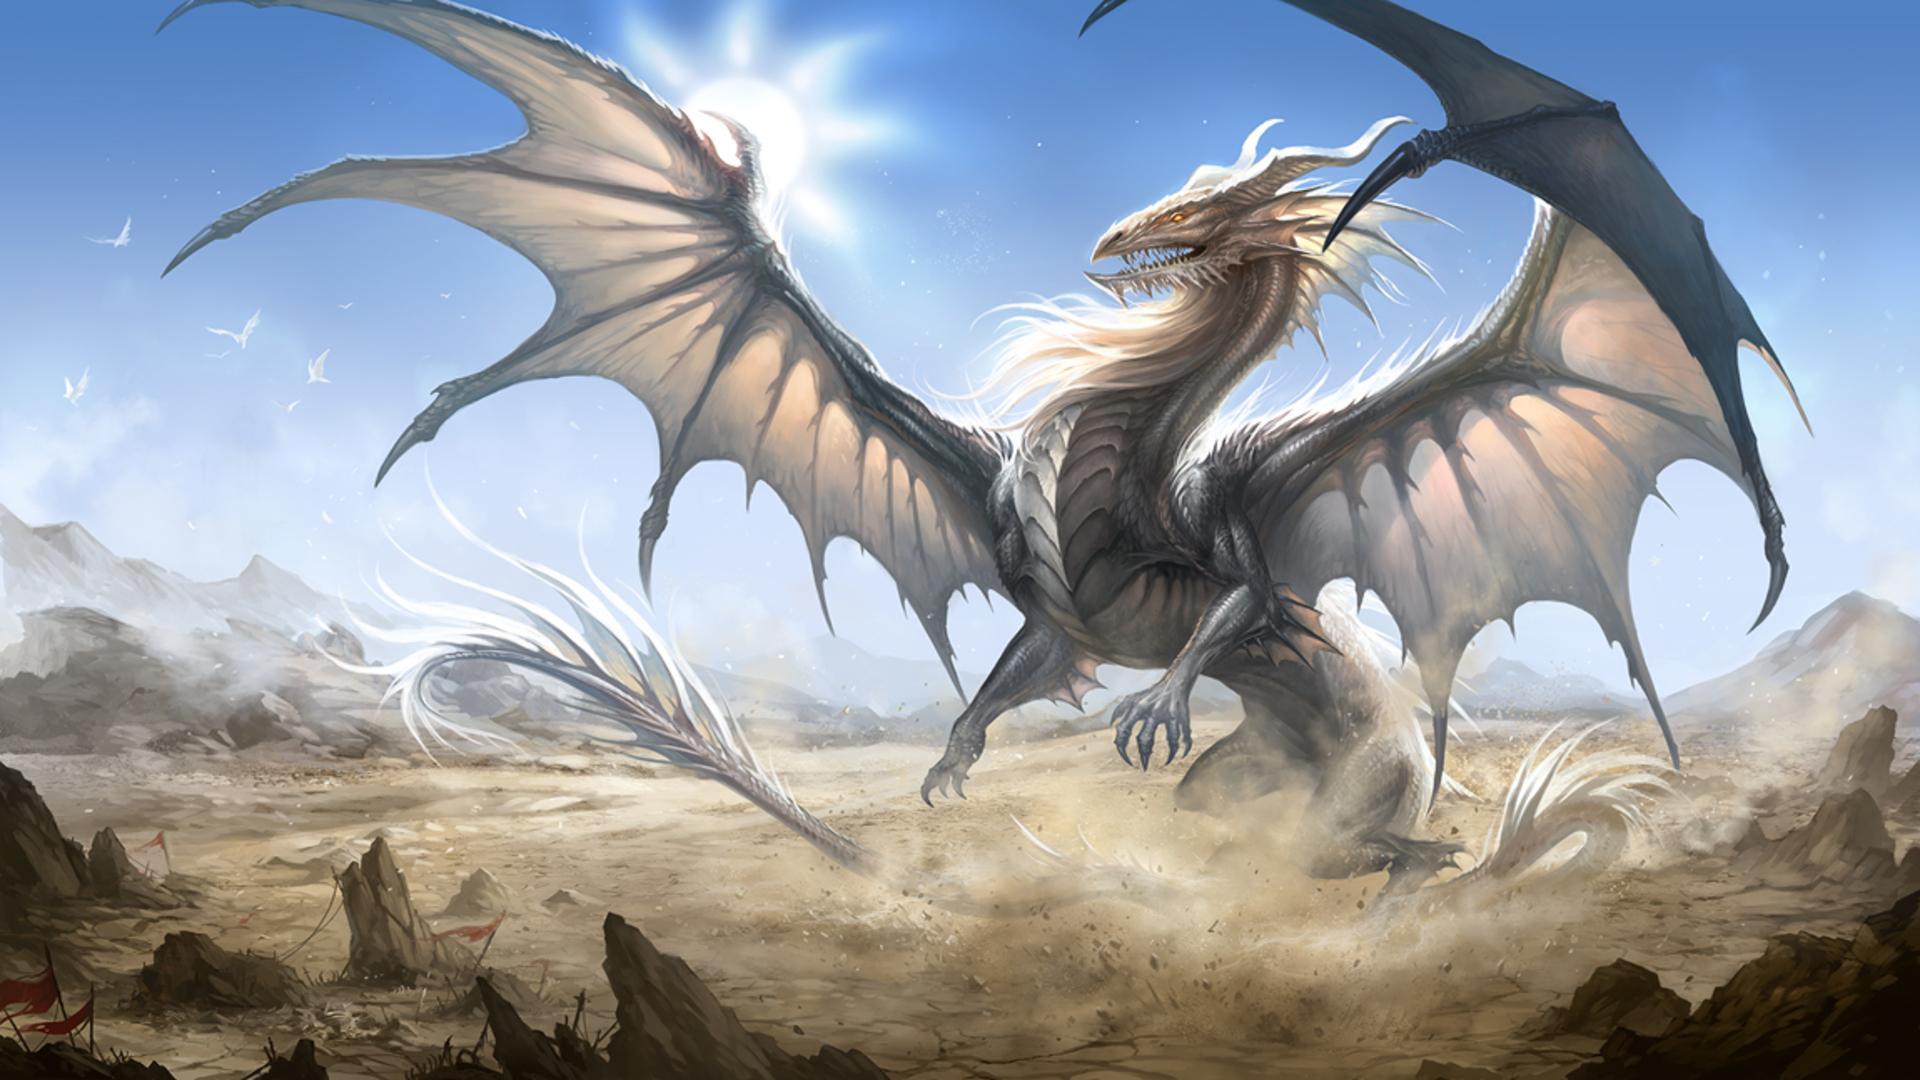 Dragon, HQ Definition Backgrounds, Neida Mahurin